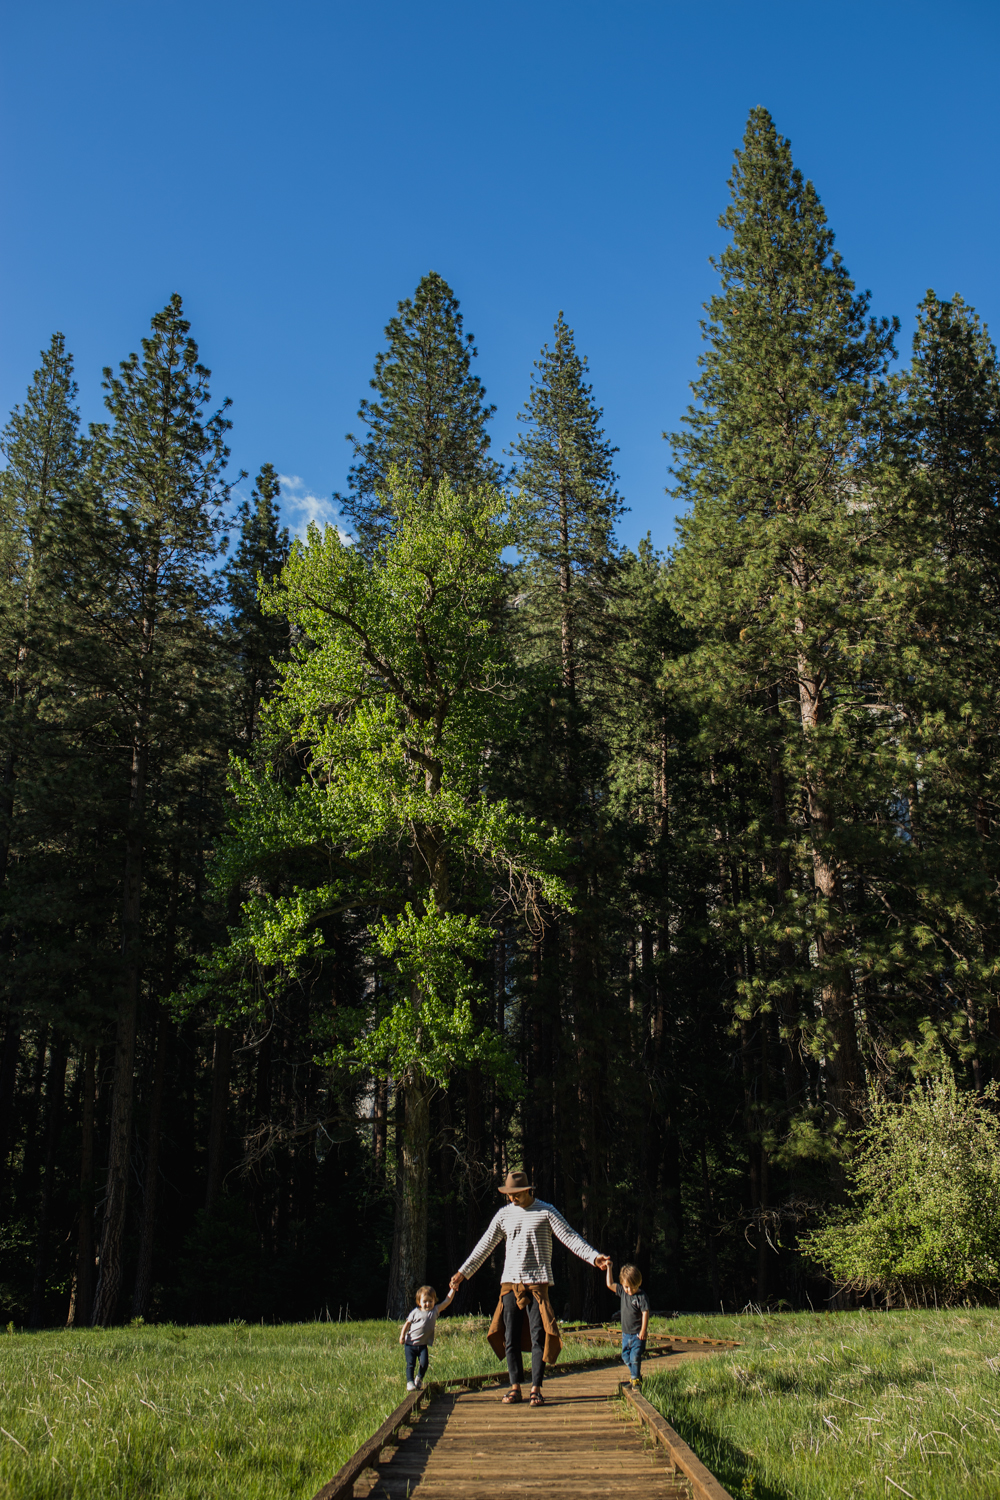 Hapa Holiday Yosemite April 2016-32.jpg